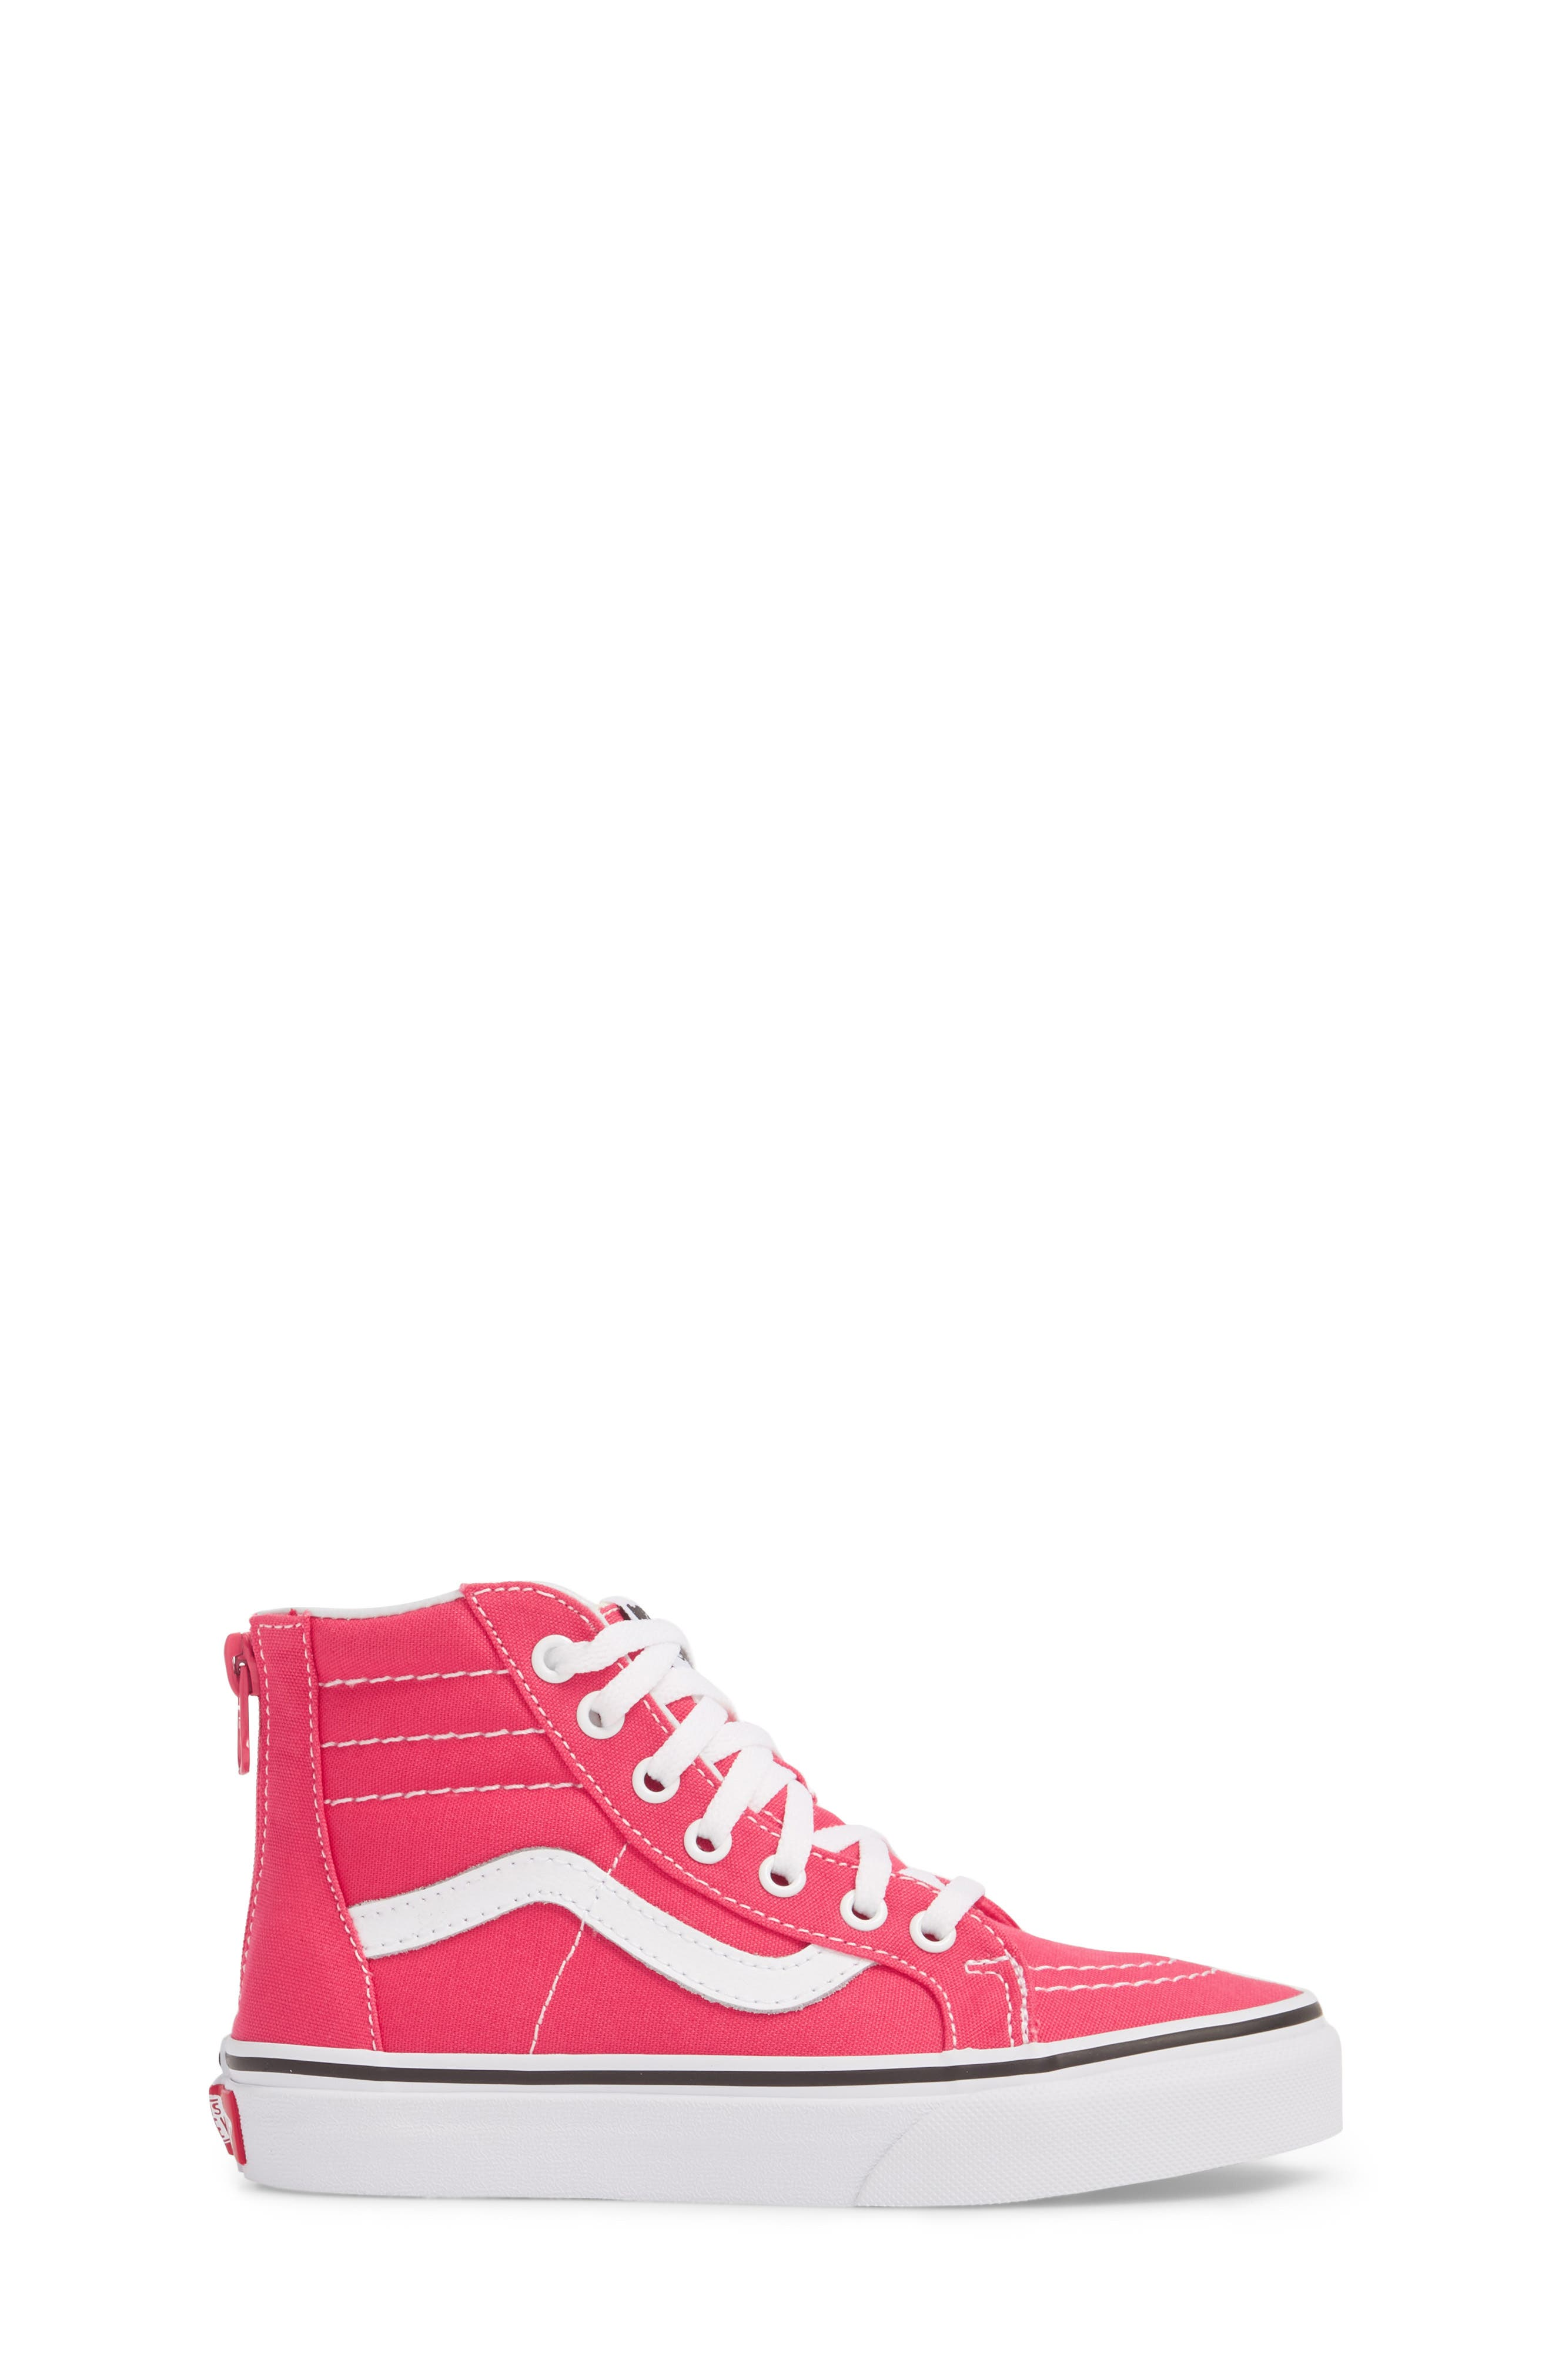 Sk8-Hi Zip Sneaker,                             Alternate thumbnail 3, color,                             AZALEA/ TRUE WHITE